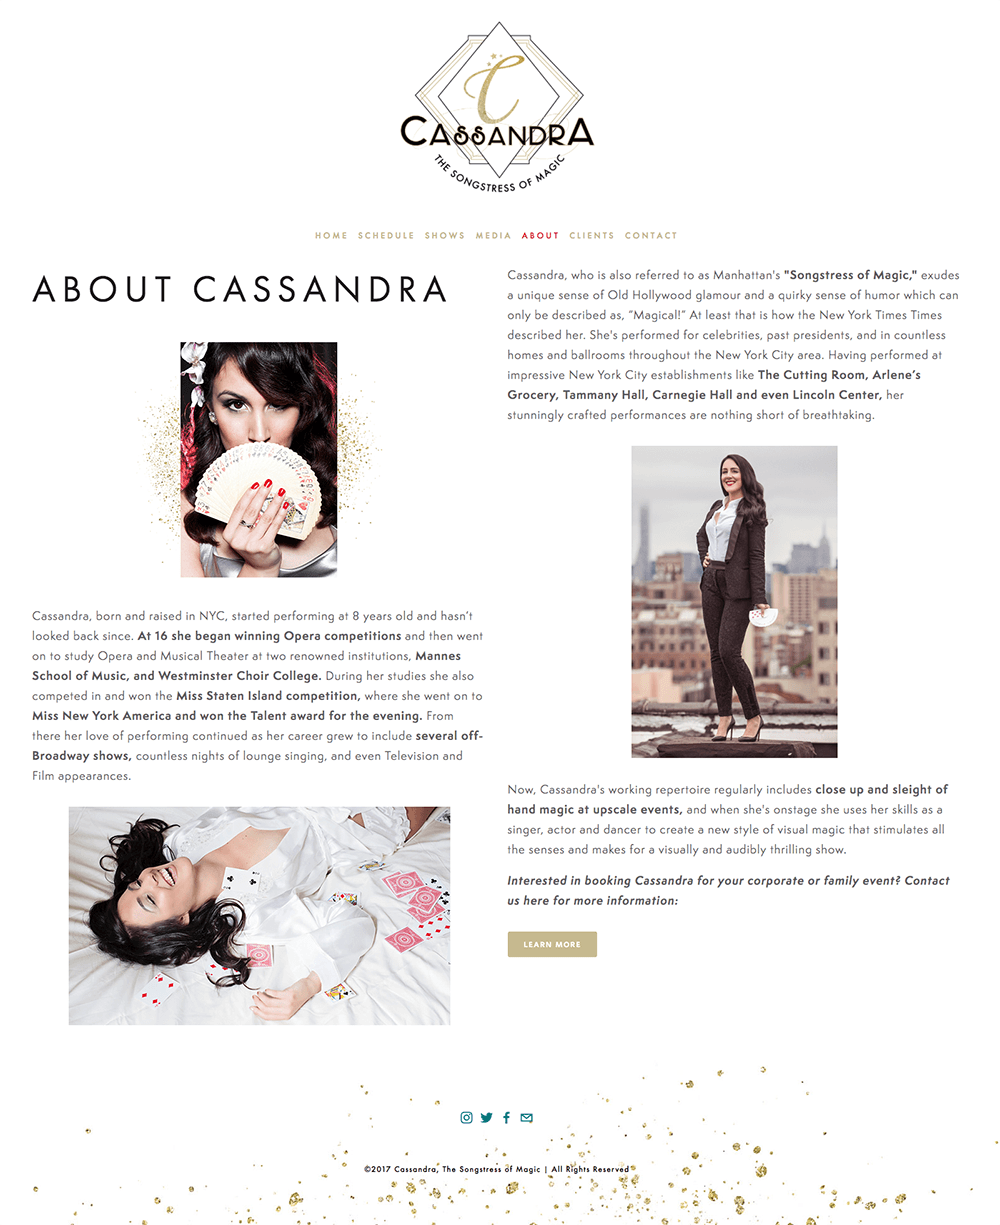 Website Design for Cassandra, The Songstress of Magic